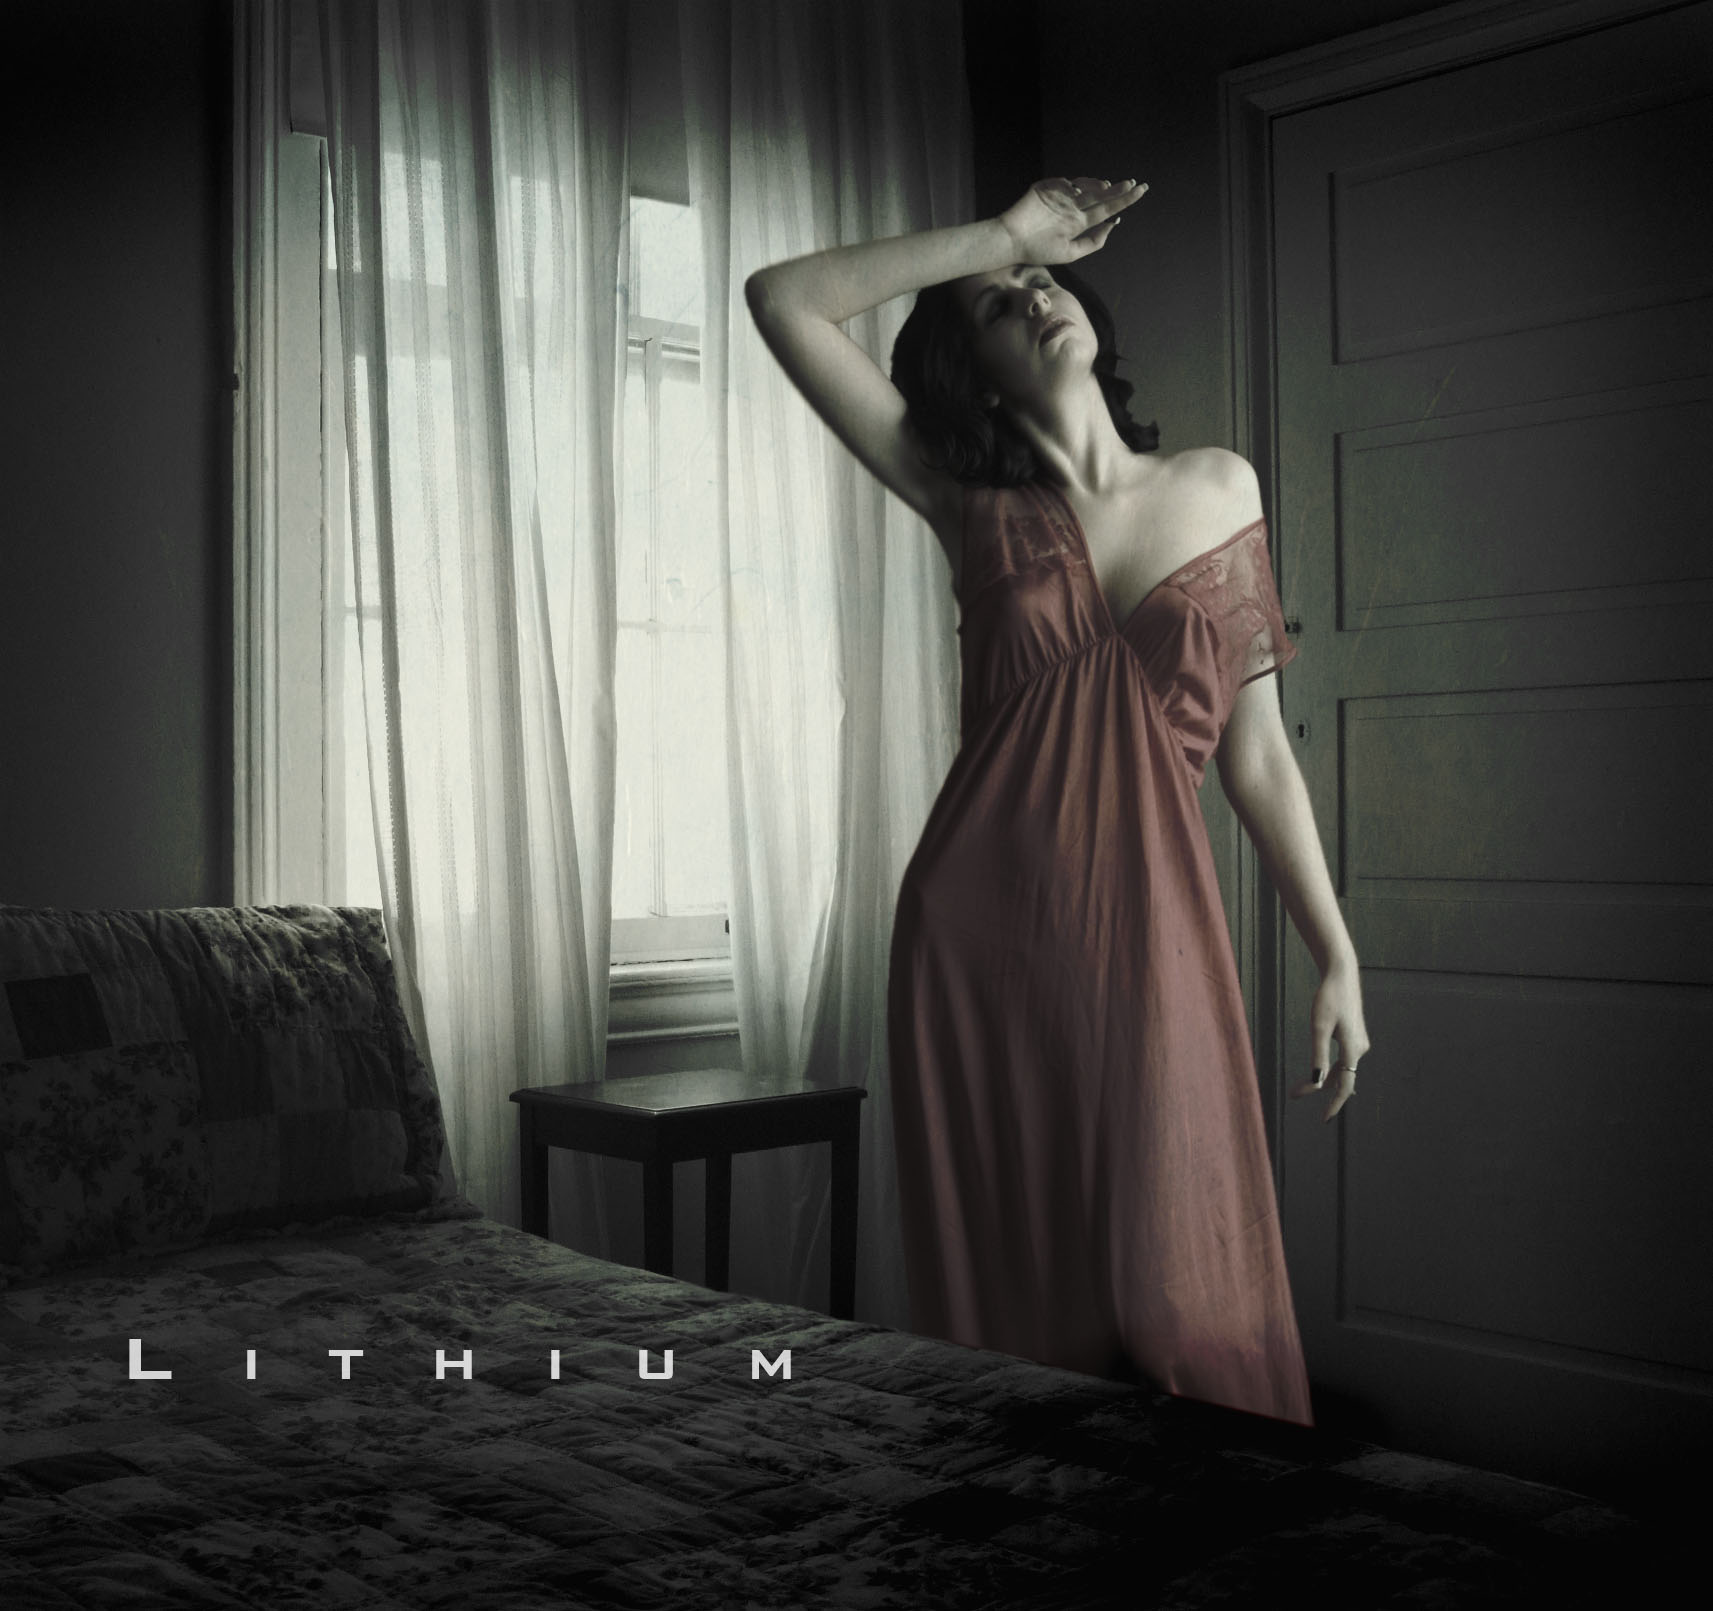 Lithium by Ash-3xpired